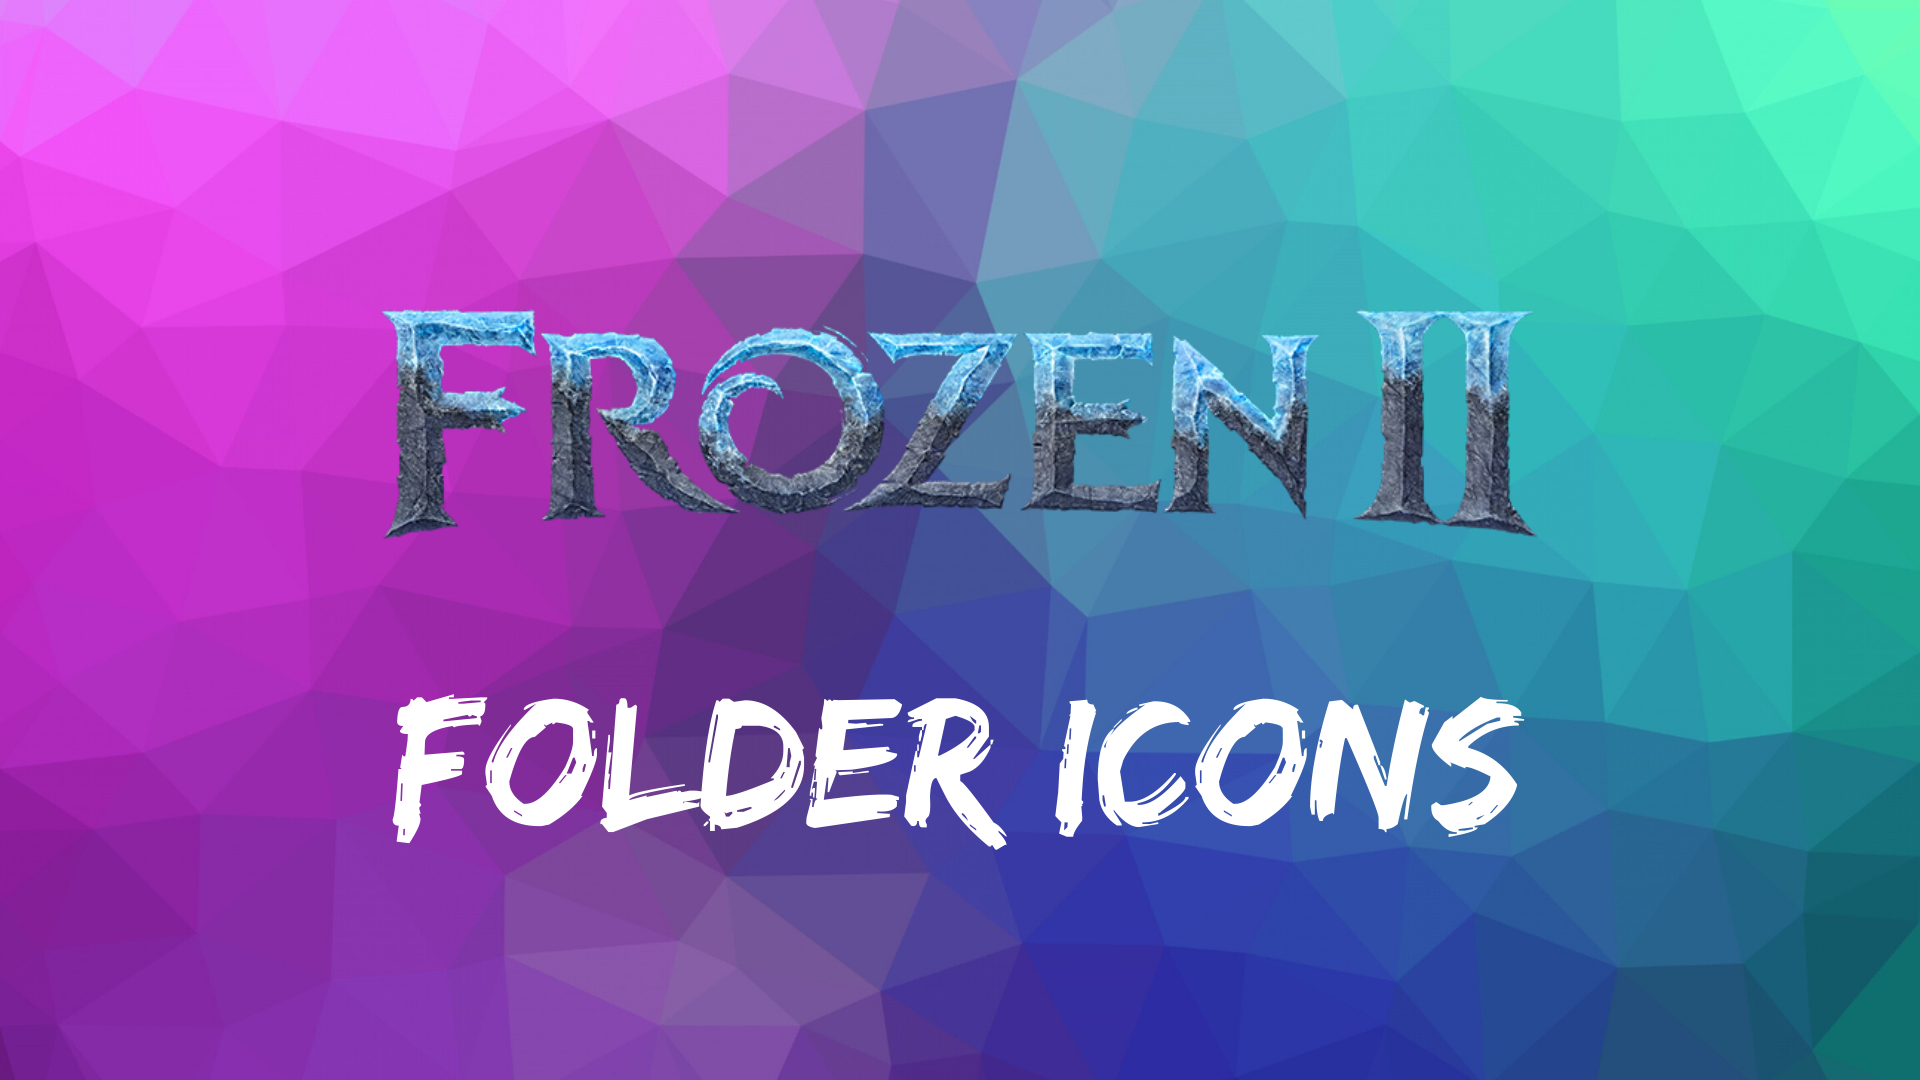 Frozen 2 Folder Icons